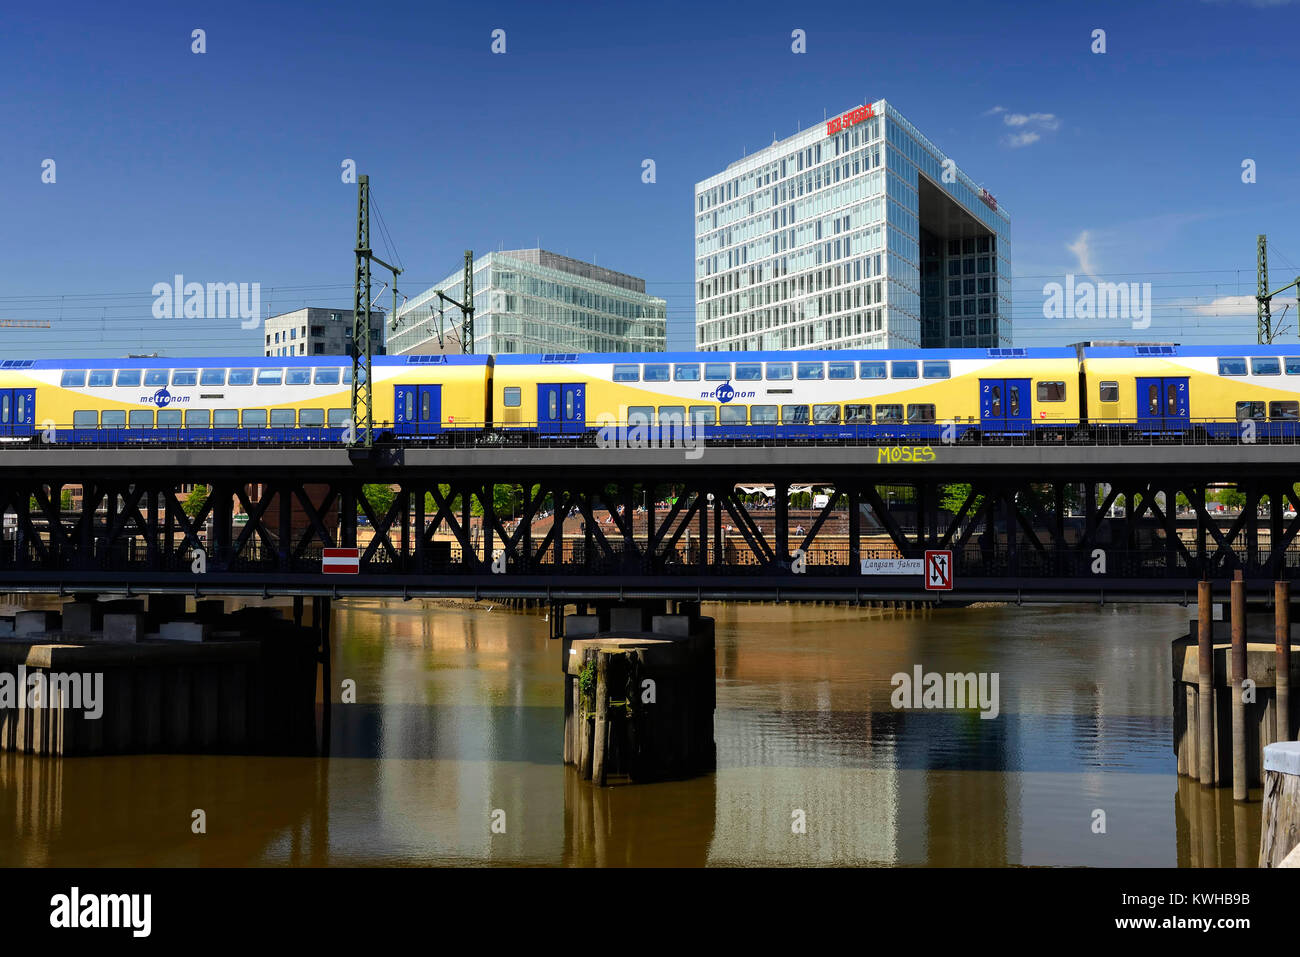 Upper harbour bridge, mirror-publishing company building and Ericus-Contor in the harbour city of Hamburg, Germany, - Stock Image